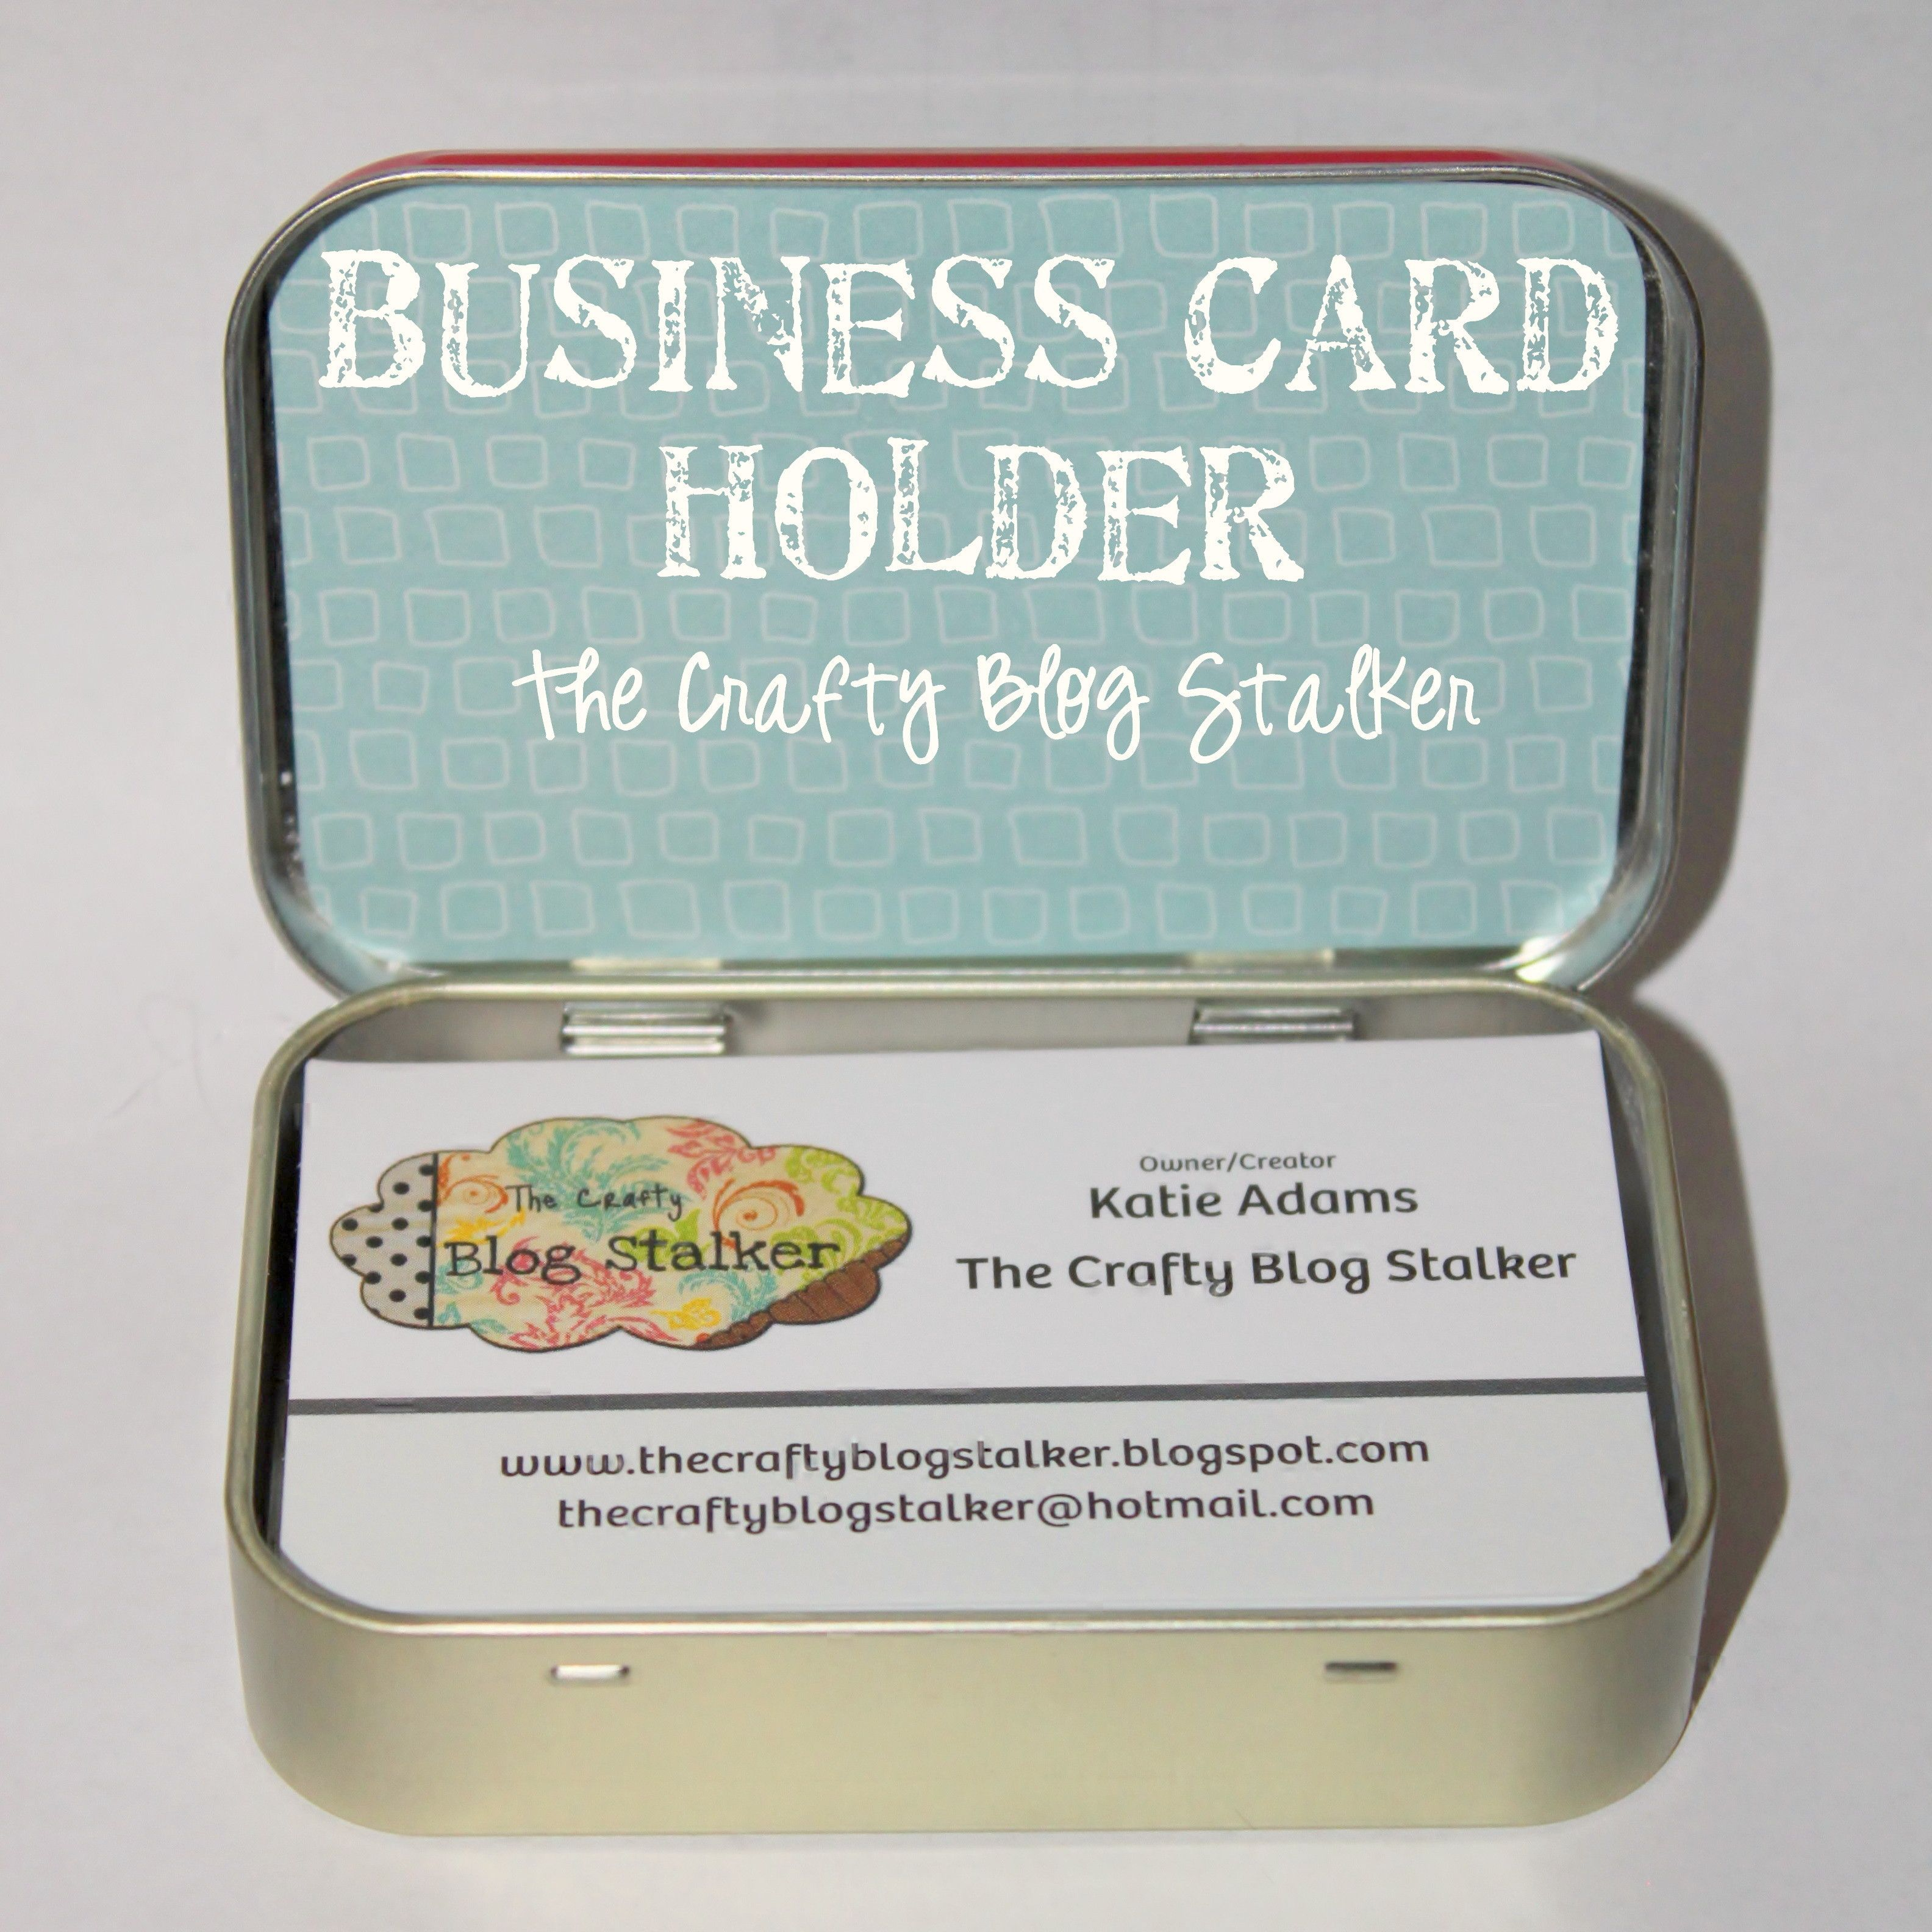 How to Make Business Card Holder with an Altoids Tin | Easy diy ...